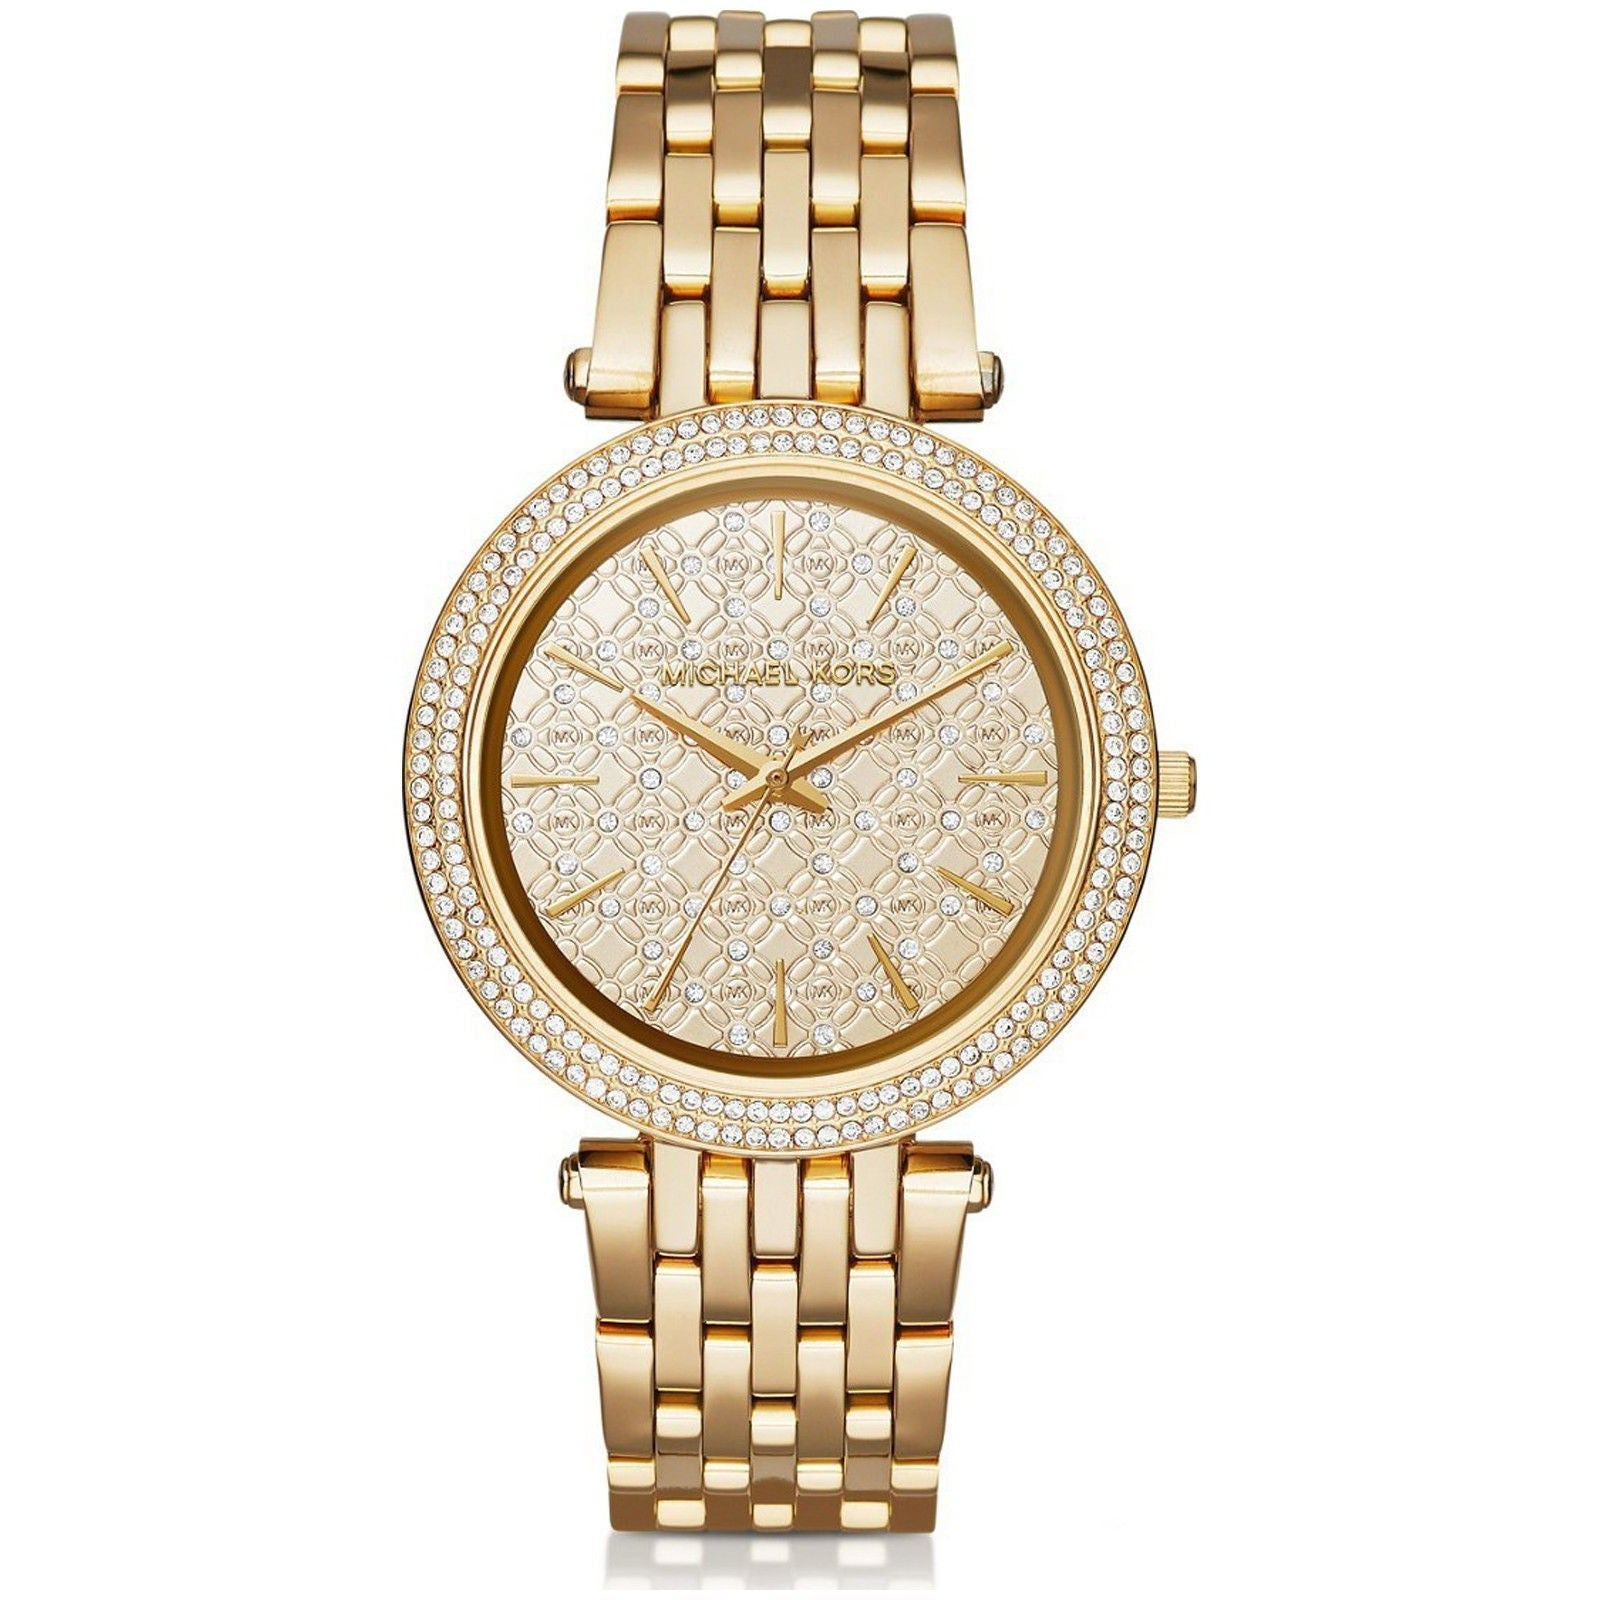 Michael Kors MK3398 For Women Analog Casual Watch